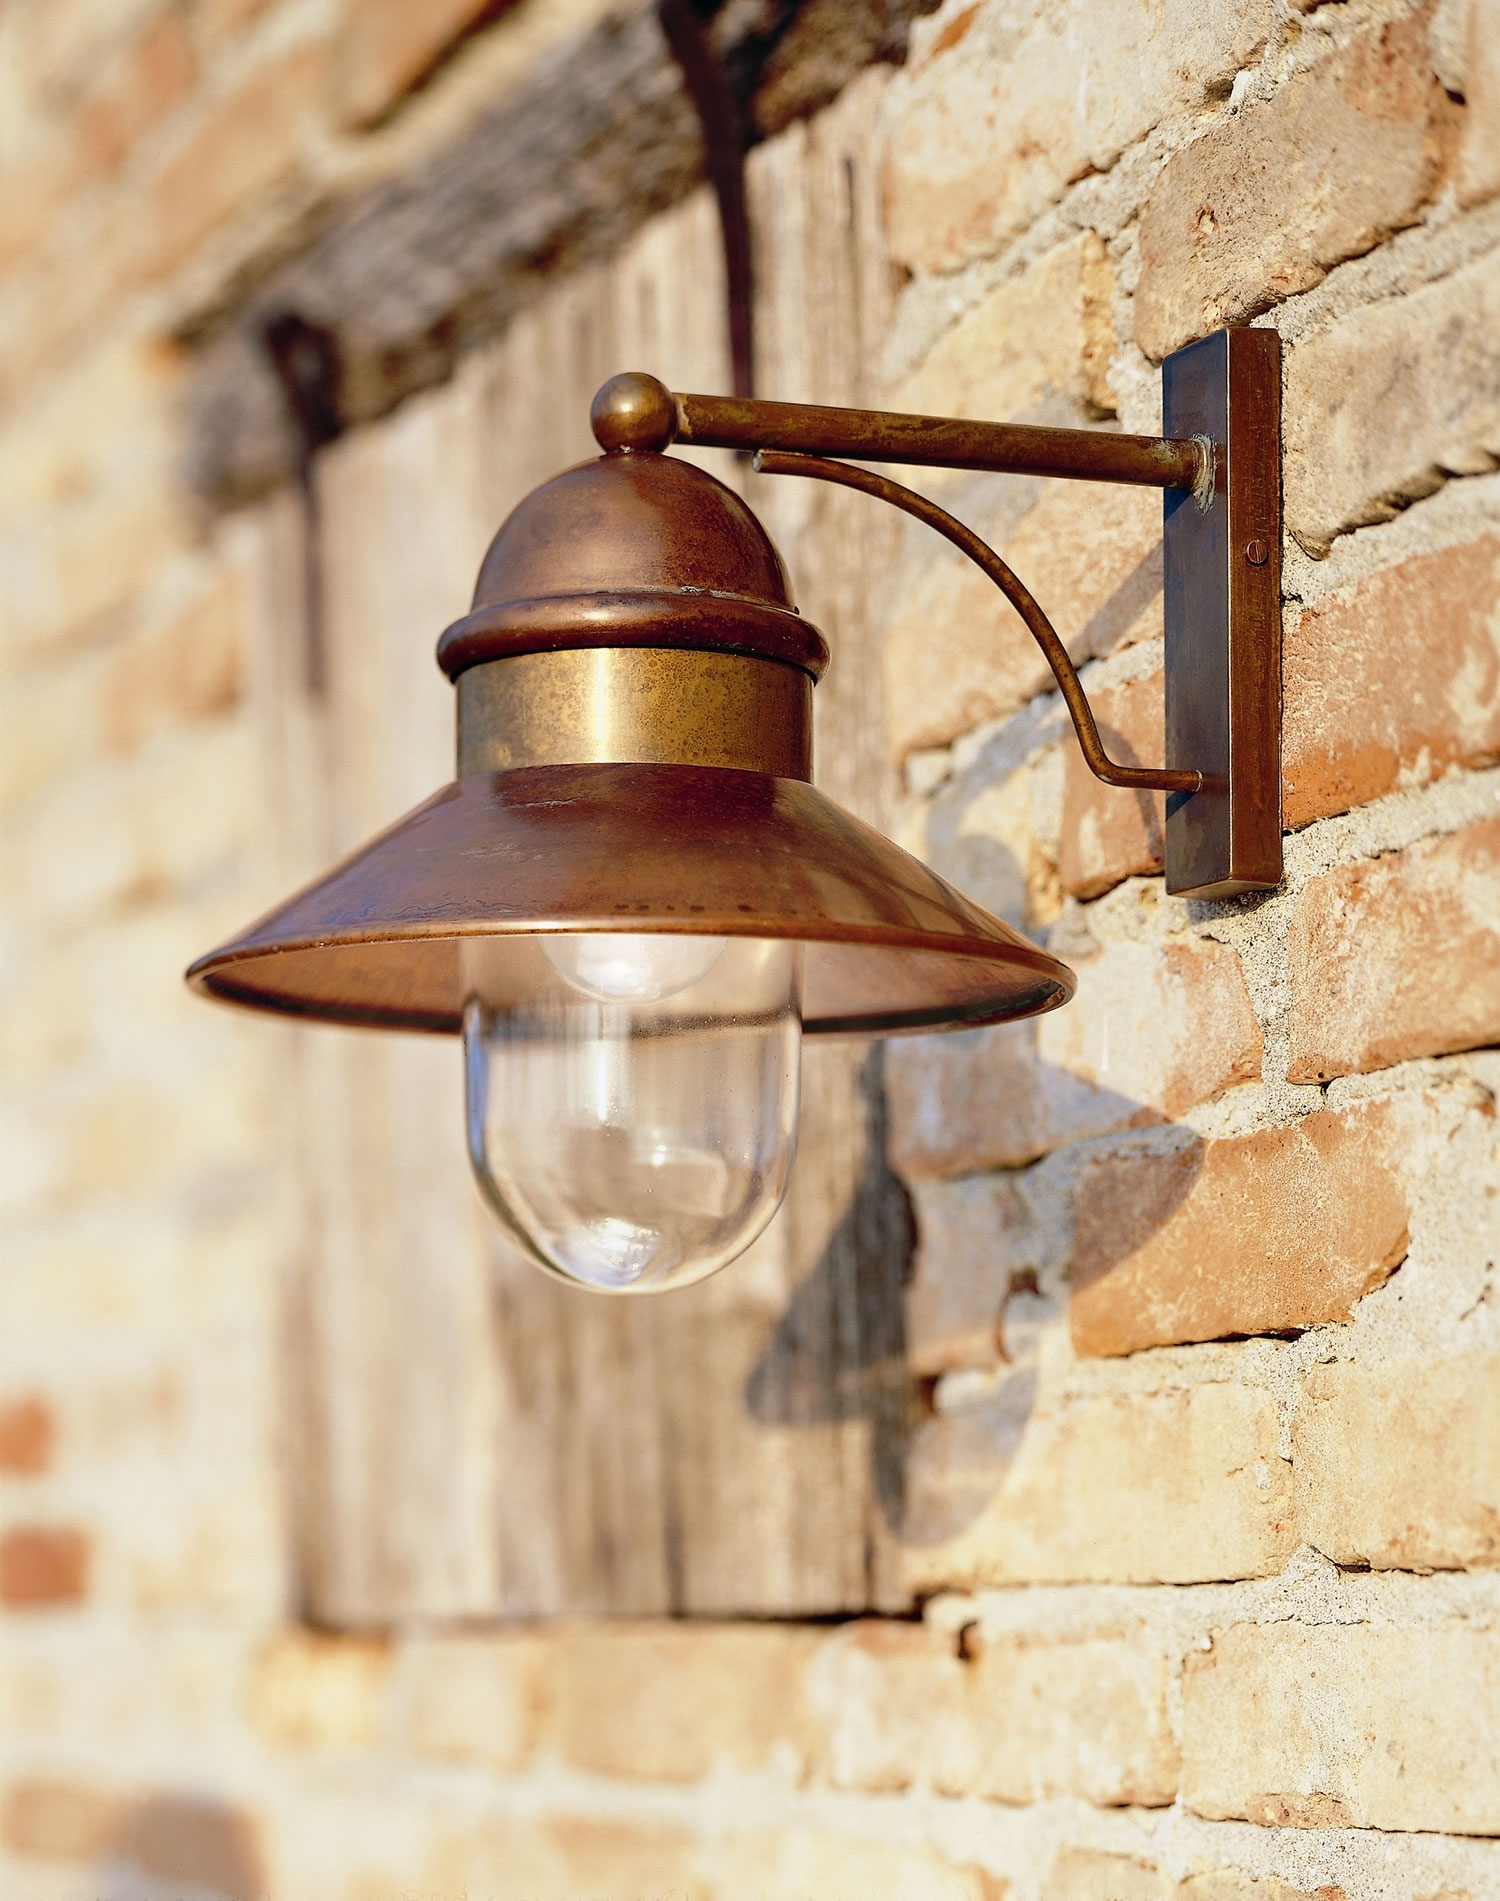 Inspiration about Il Borgo 244.05 Exterior Wall Light | Online Lighting With Copper Outdoor Wall Lighting (#1 of 15)